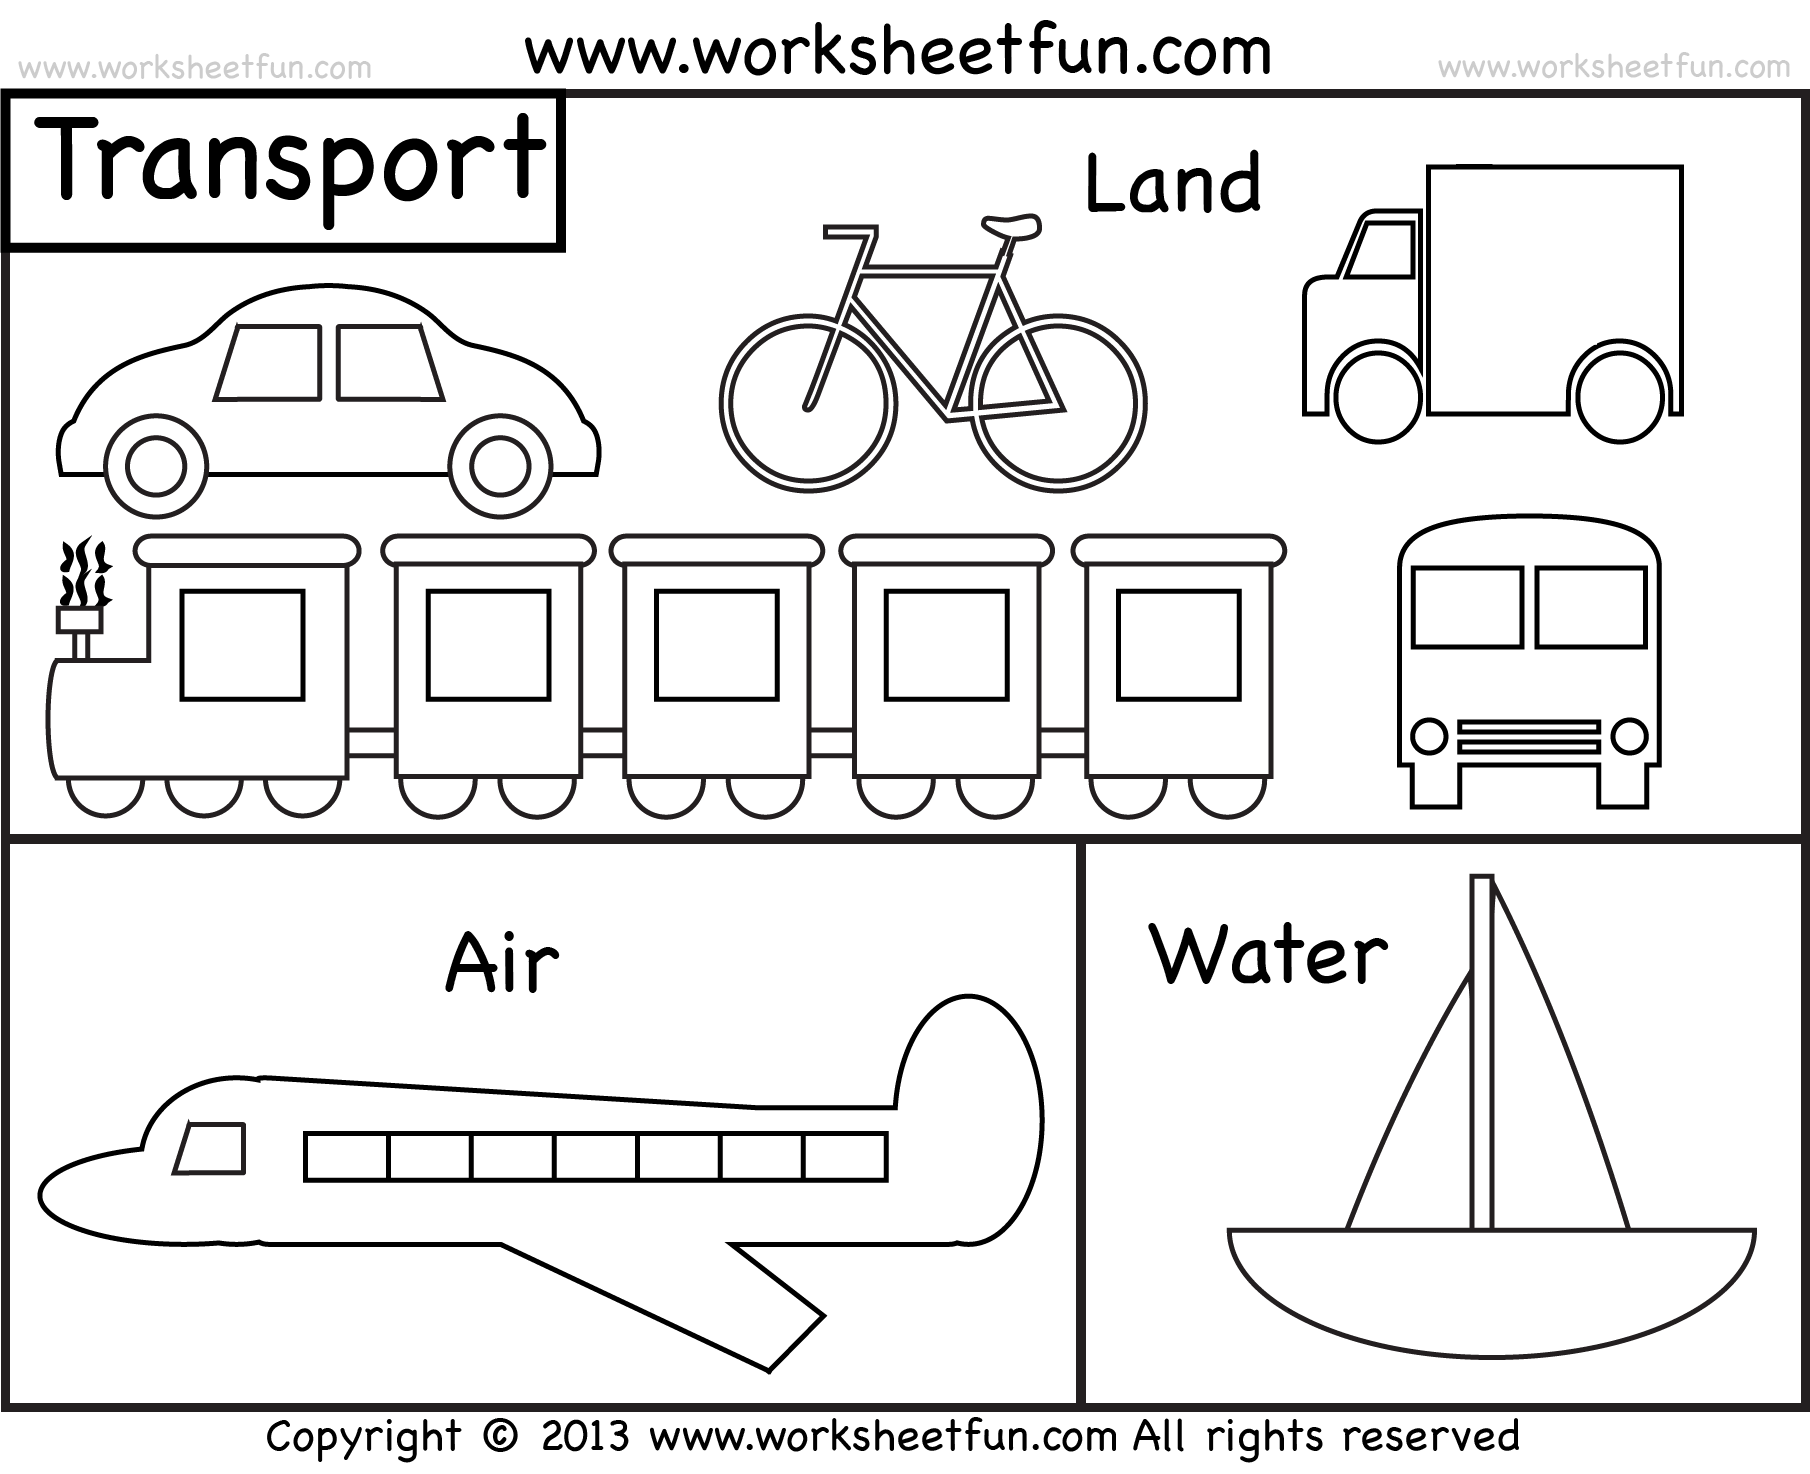 Transport drawing colouring. Easily transportation coloring sheets